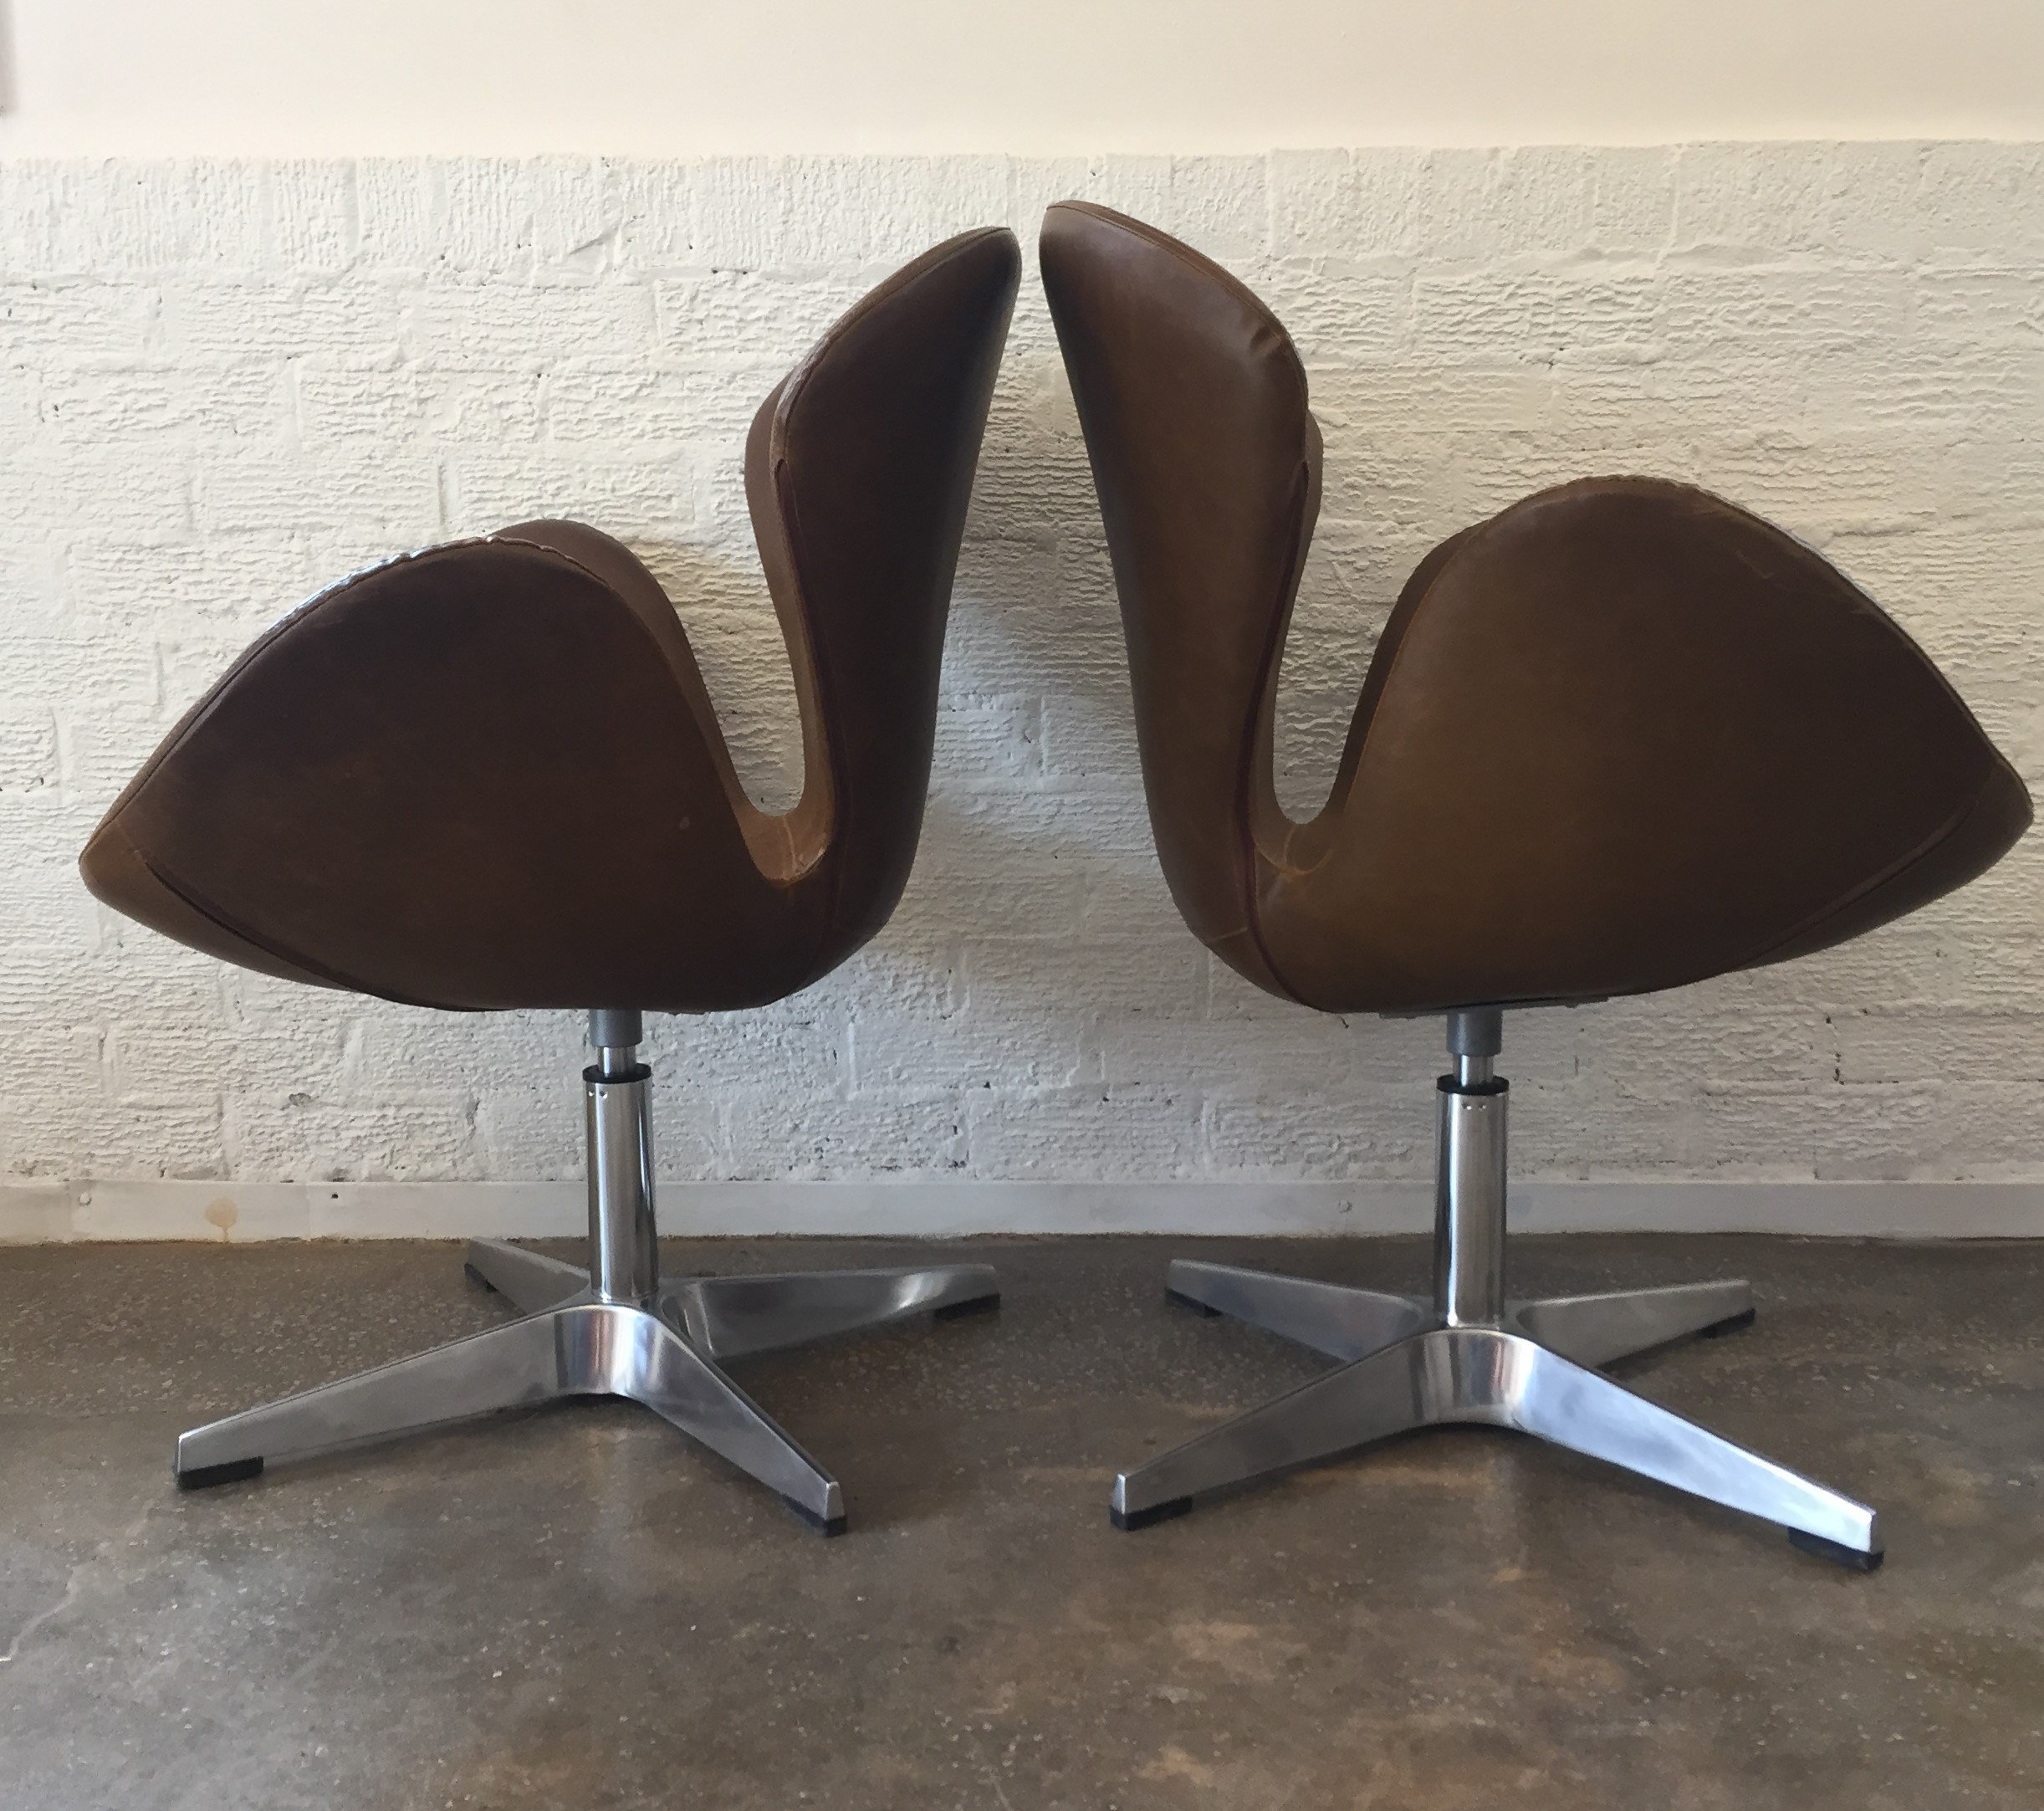 Arne Jacobsen Swan Chair Mid Century Modern Swan Chairs, Brown Vinyl, Arne Jacobsen ...